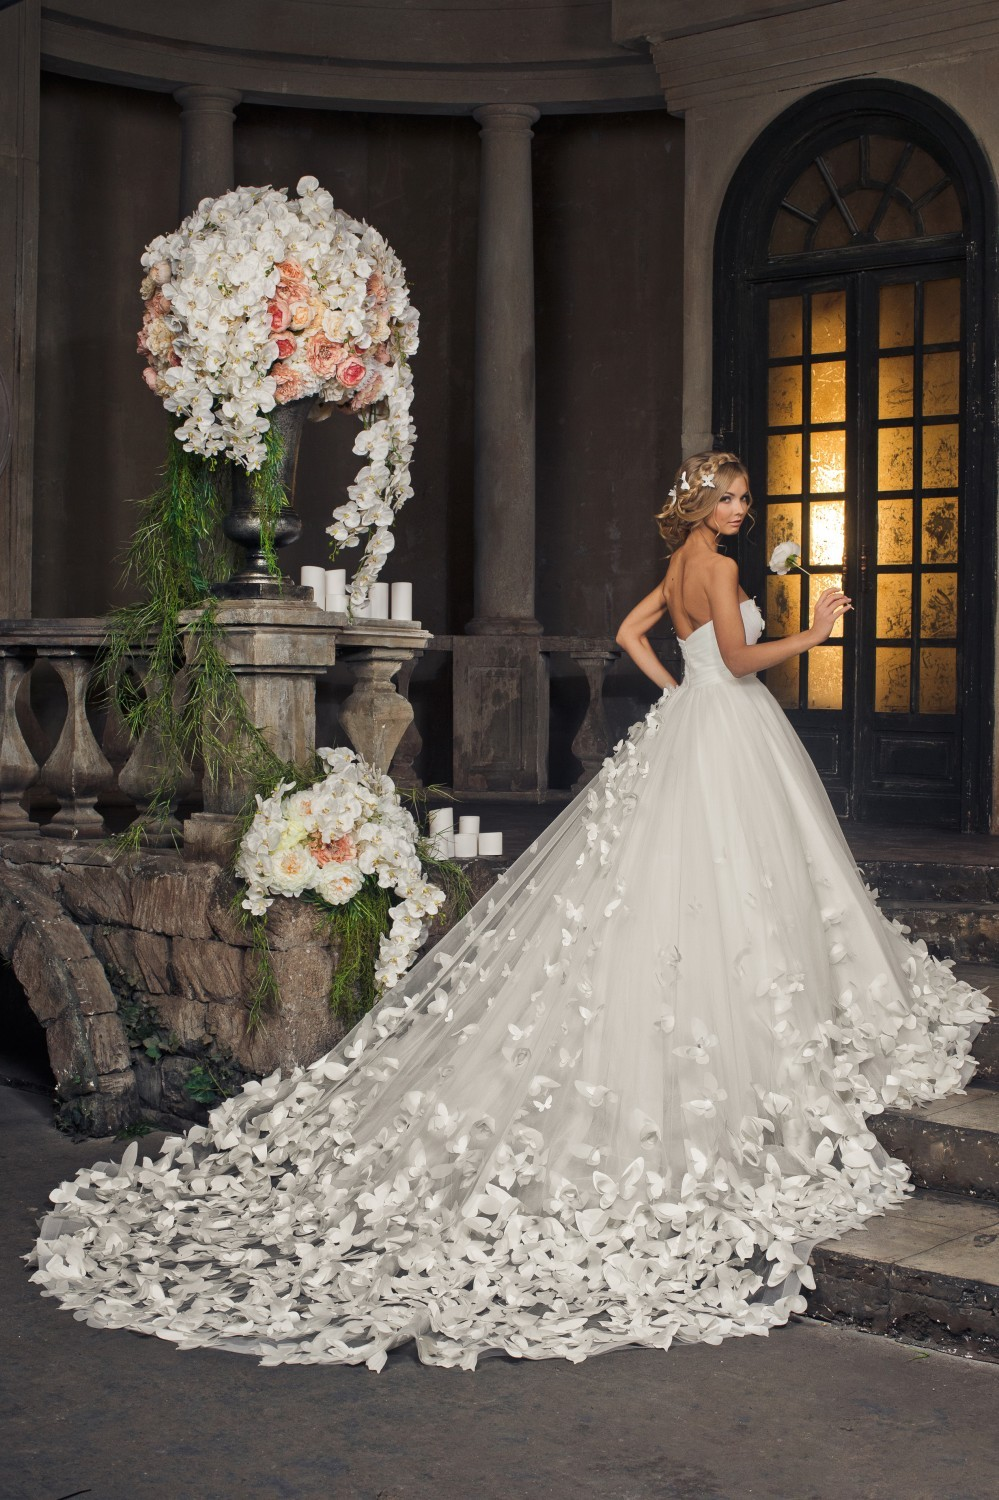 How Long Wedding Dress Should Be: Tips on Choosing the ...